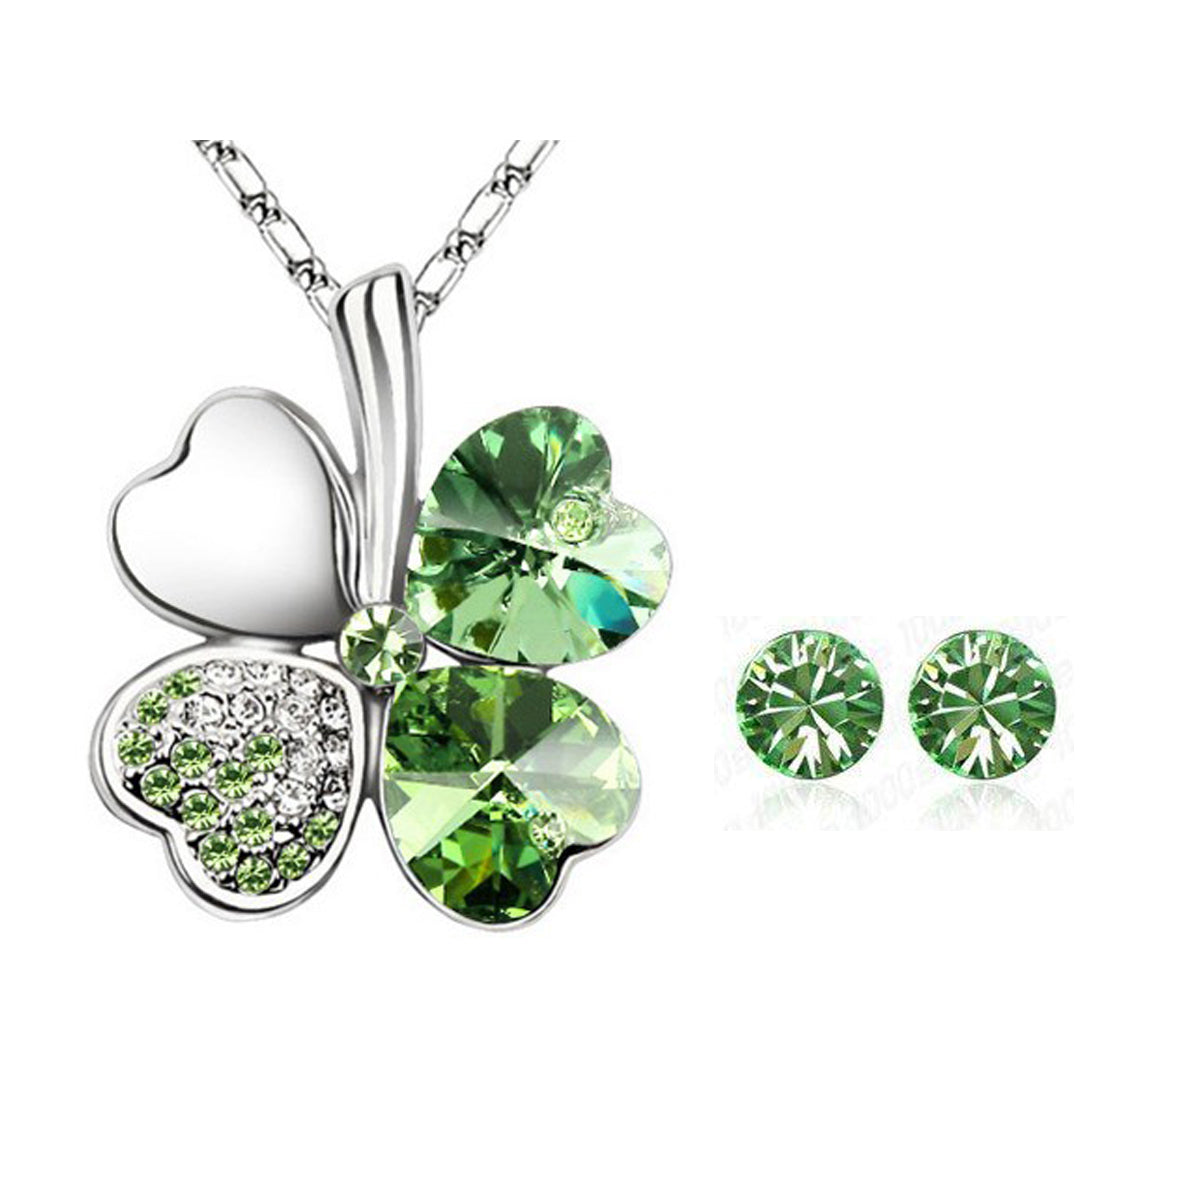 Gold Plated Swarovski Elements Crystal Heart Shaped Four Leaf Clover Pendant Necklace and Stud Earrings Jewelry Set